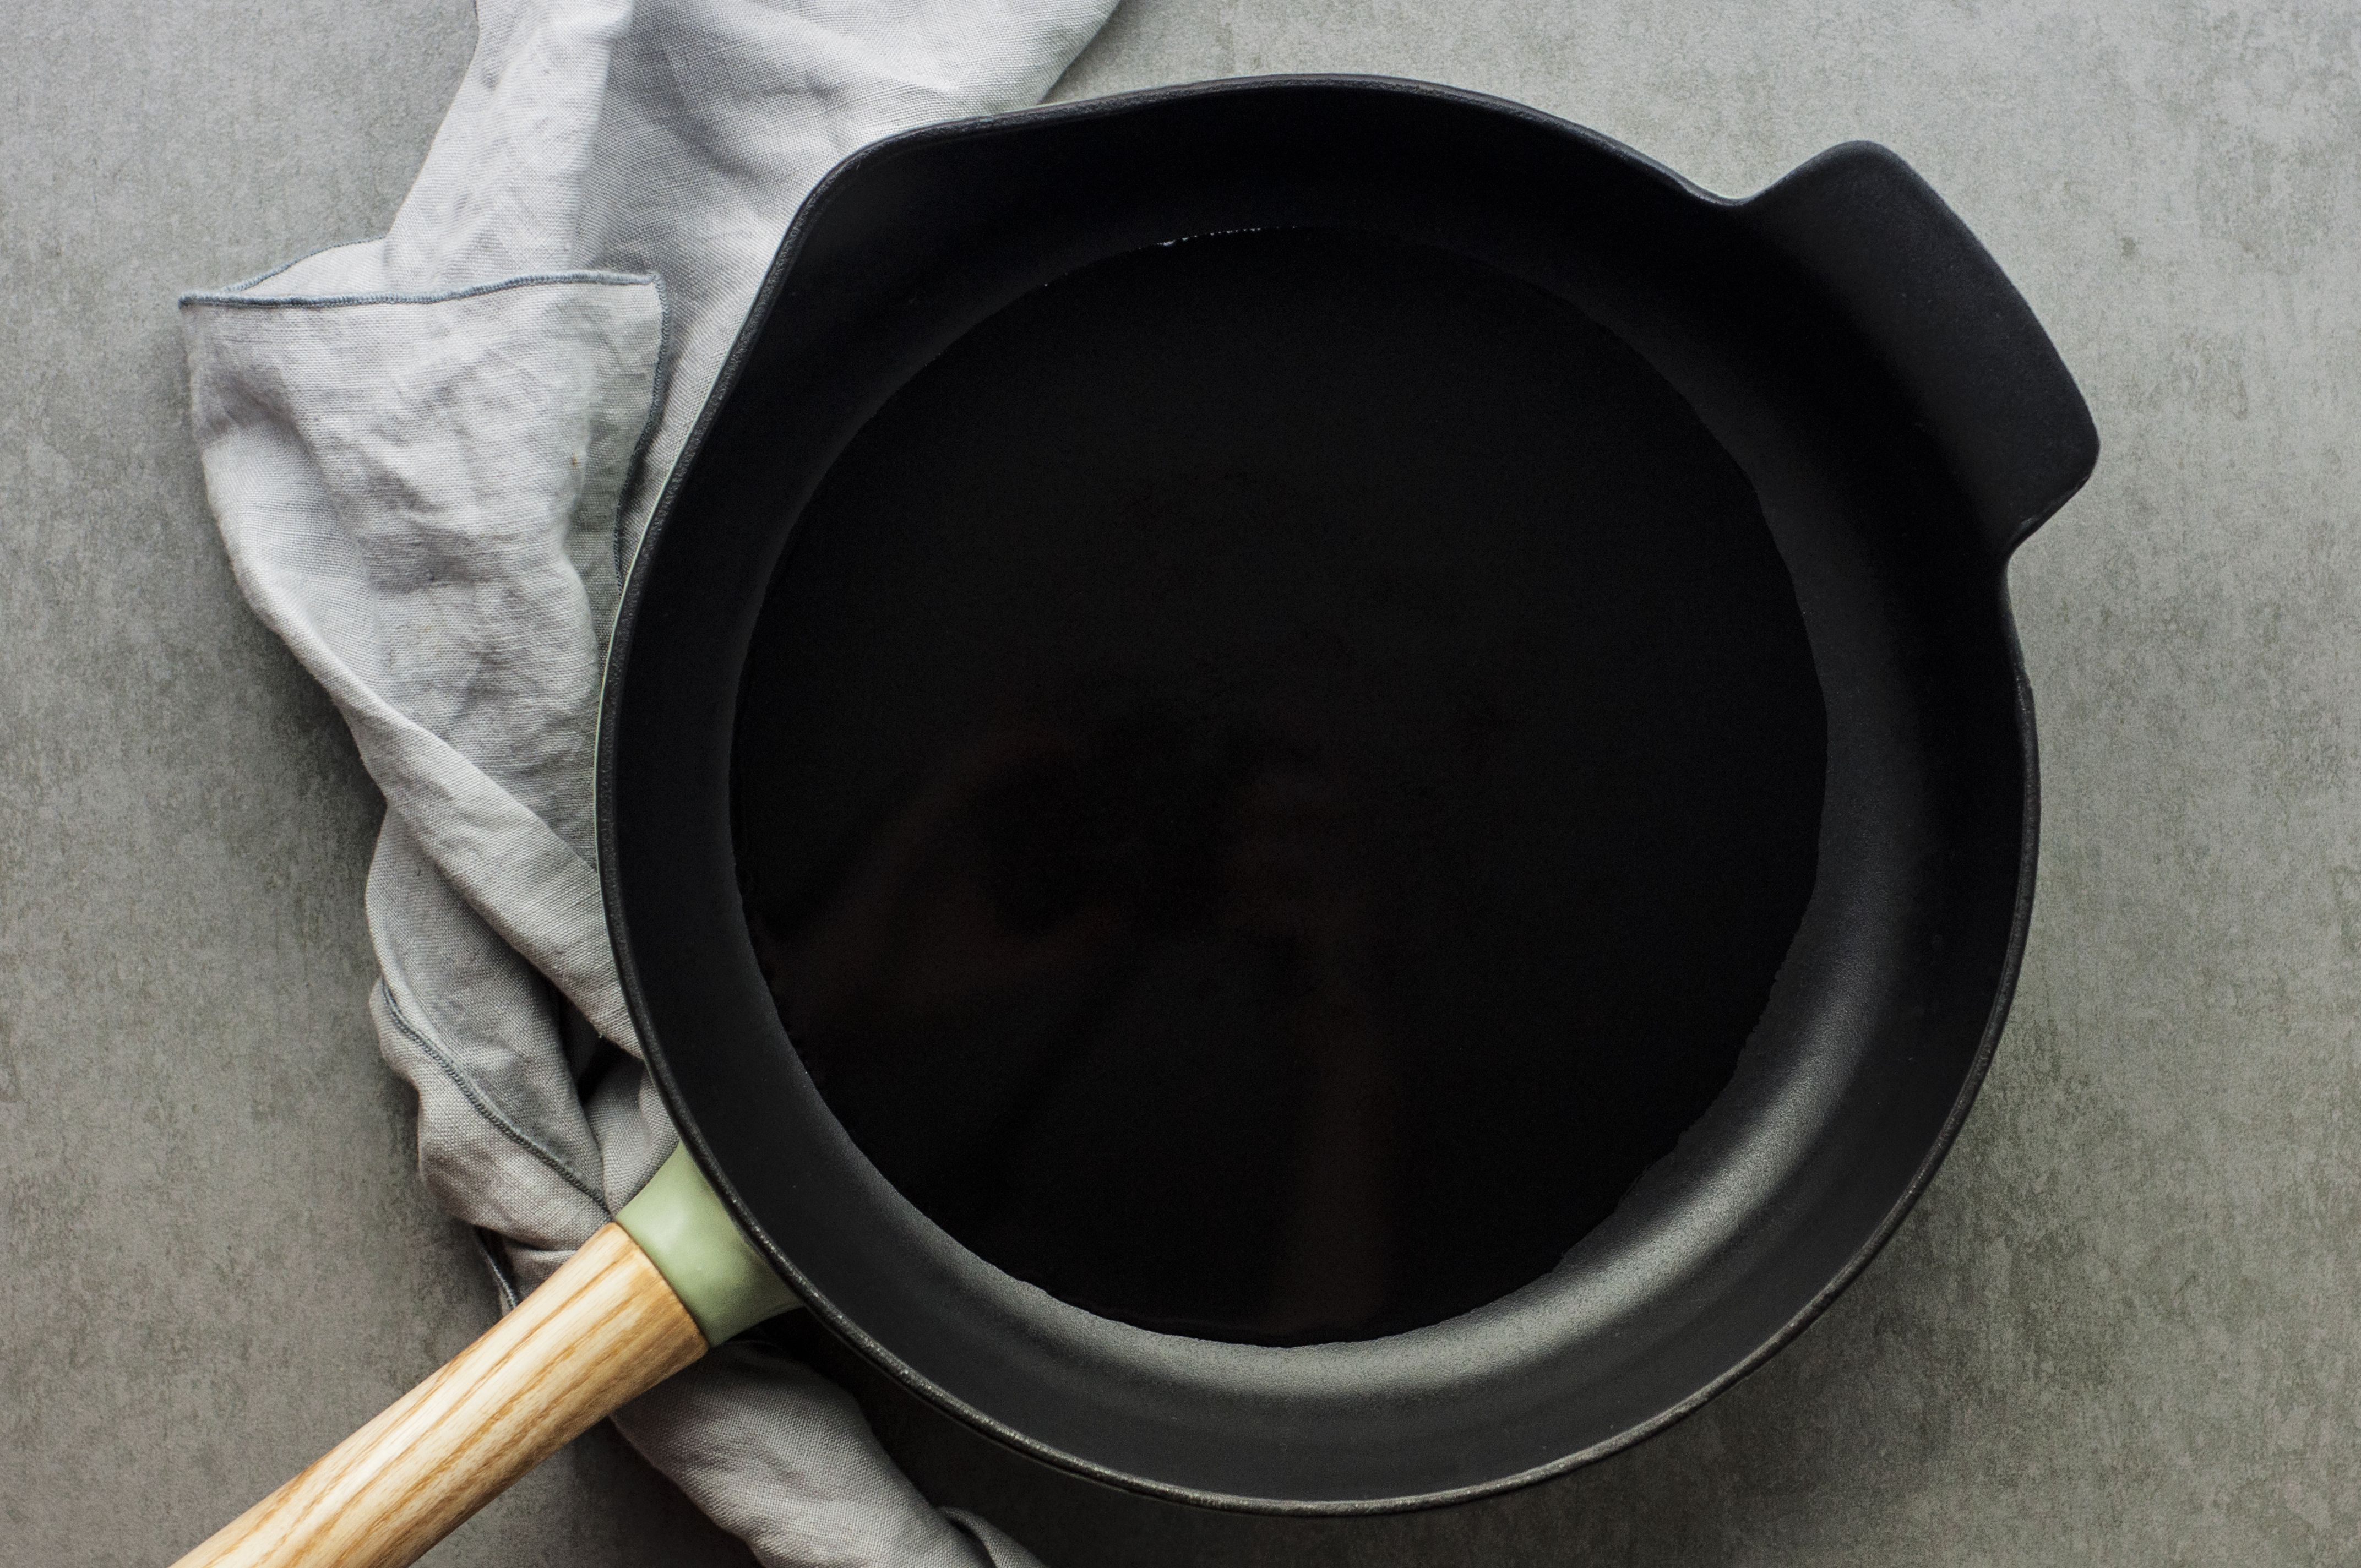 Oil heating in a skillet